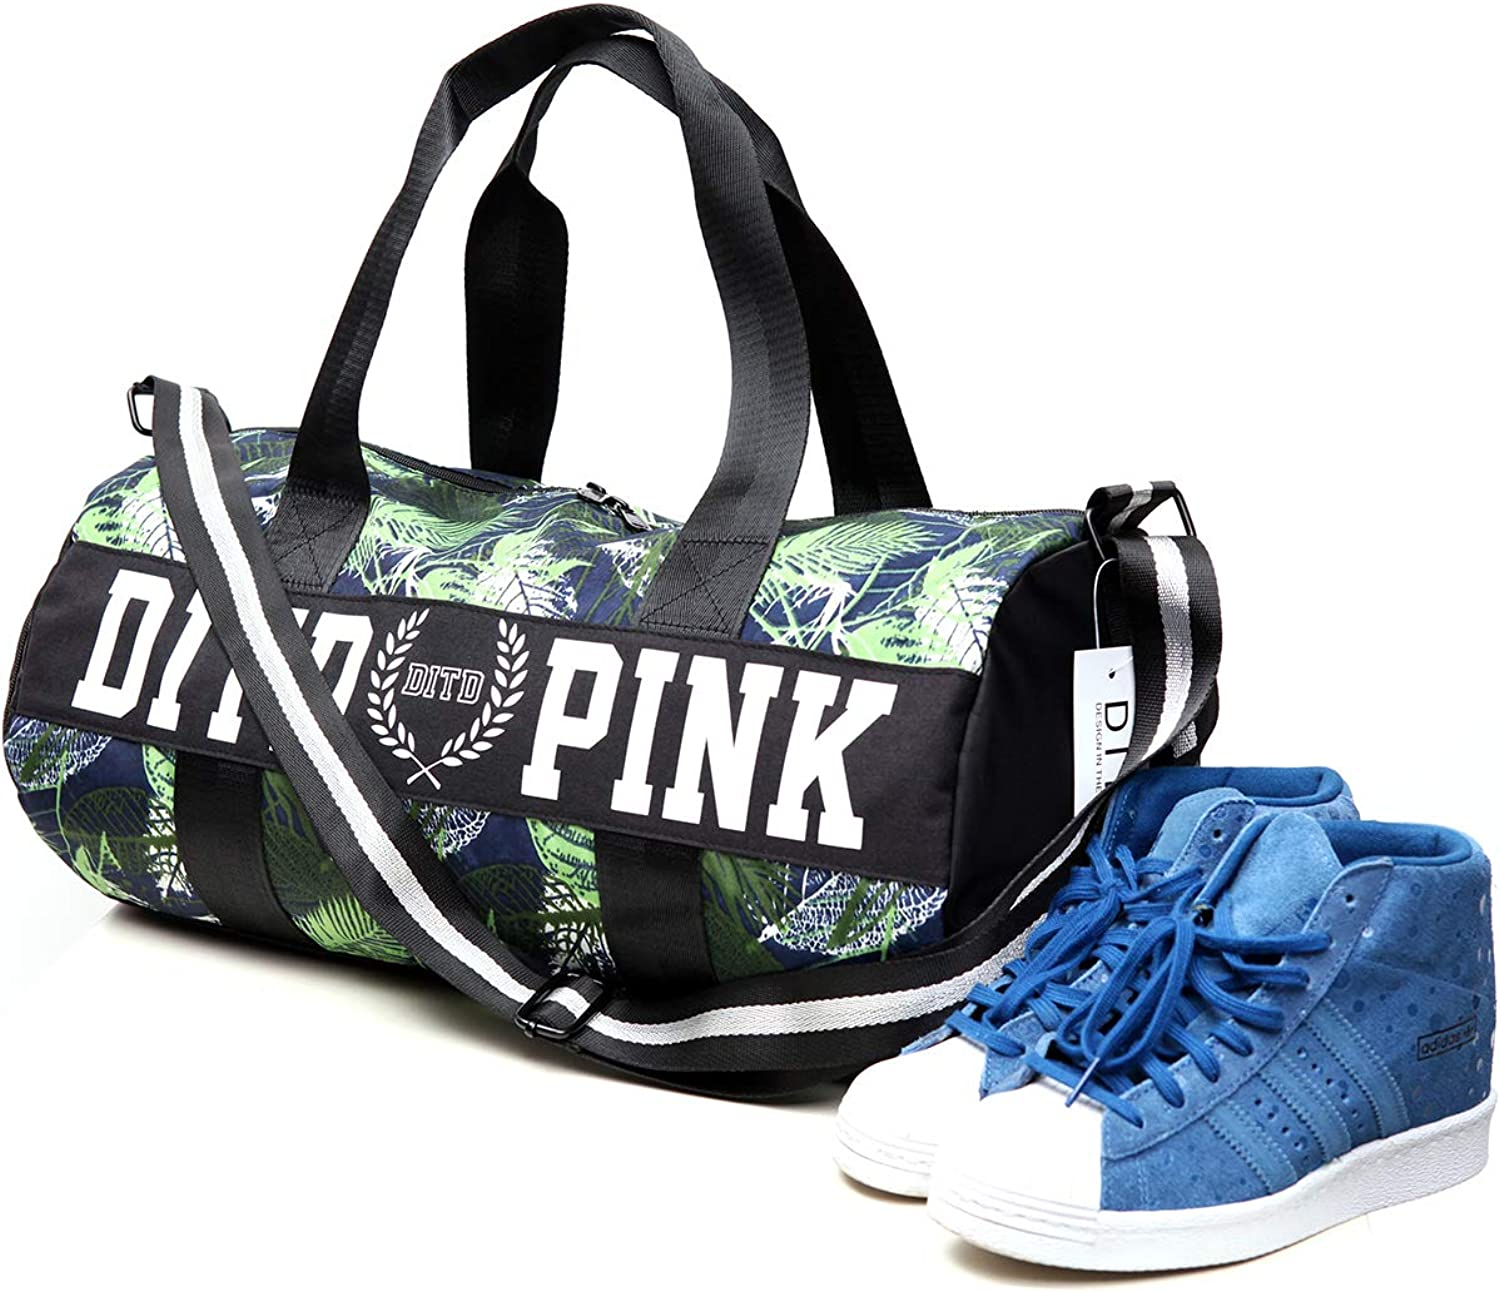 Sports Gym Bag with Shoe Compartment Lightweight Luggage Travel Duffel Bag Weekender Bag for Men Women